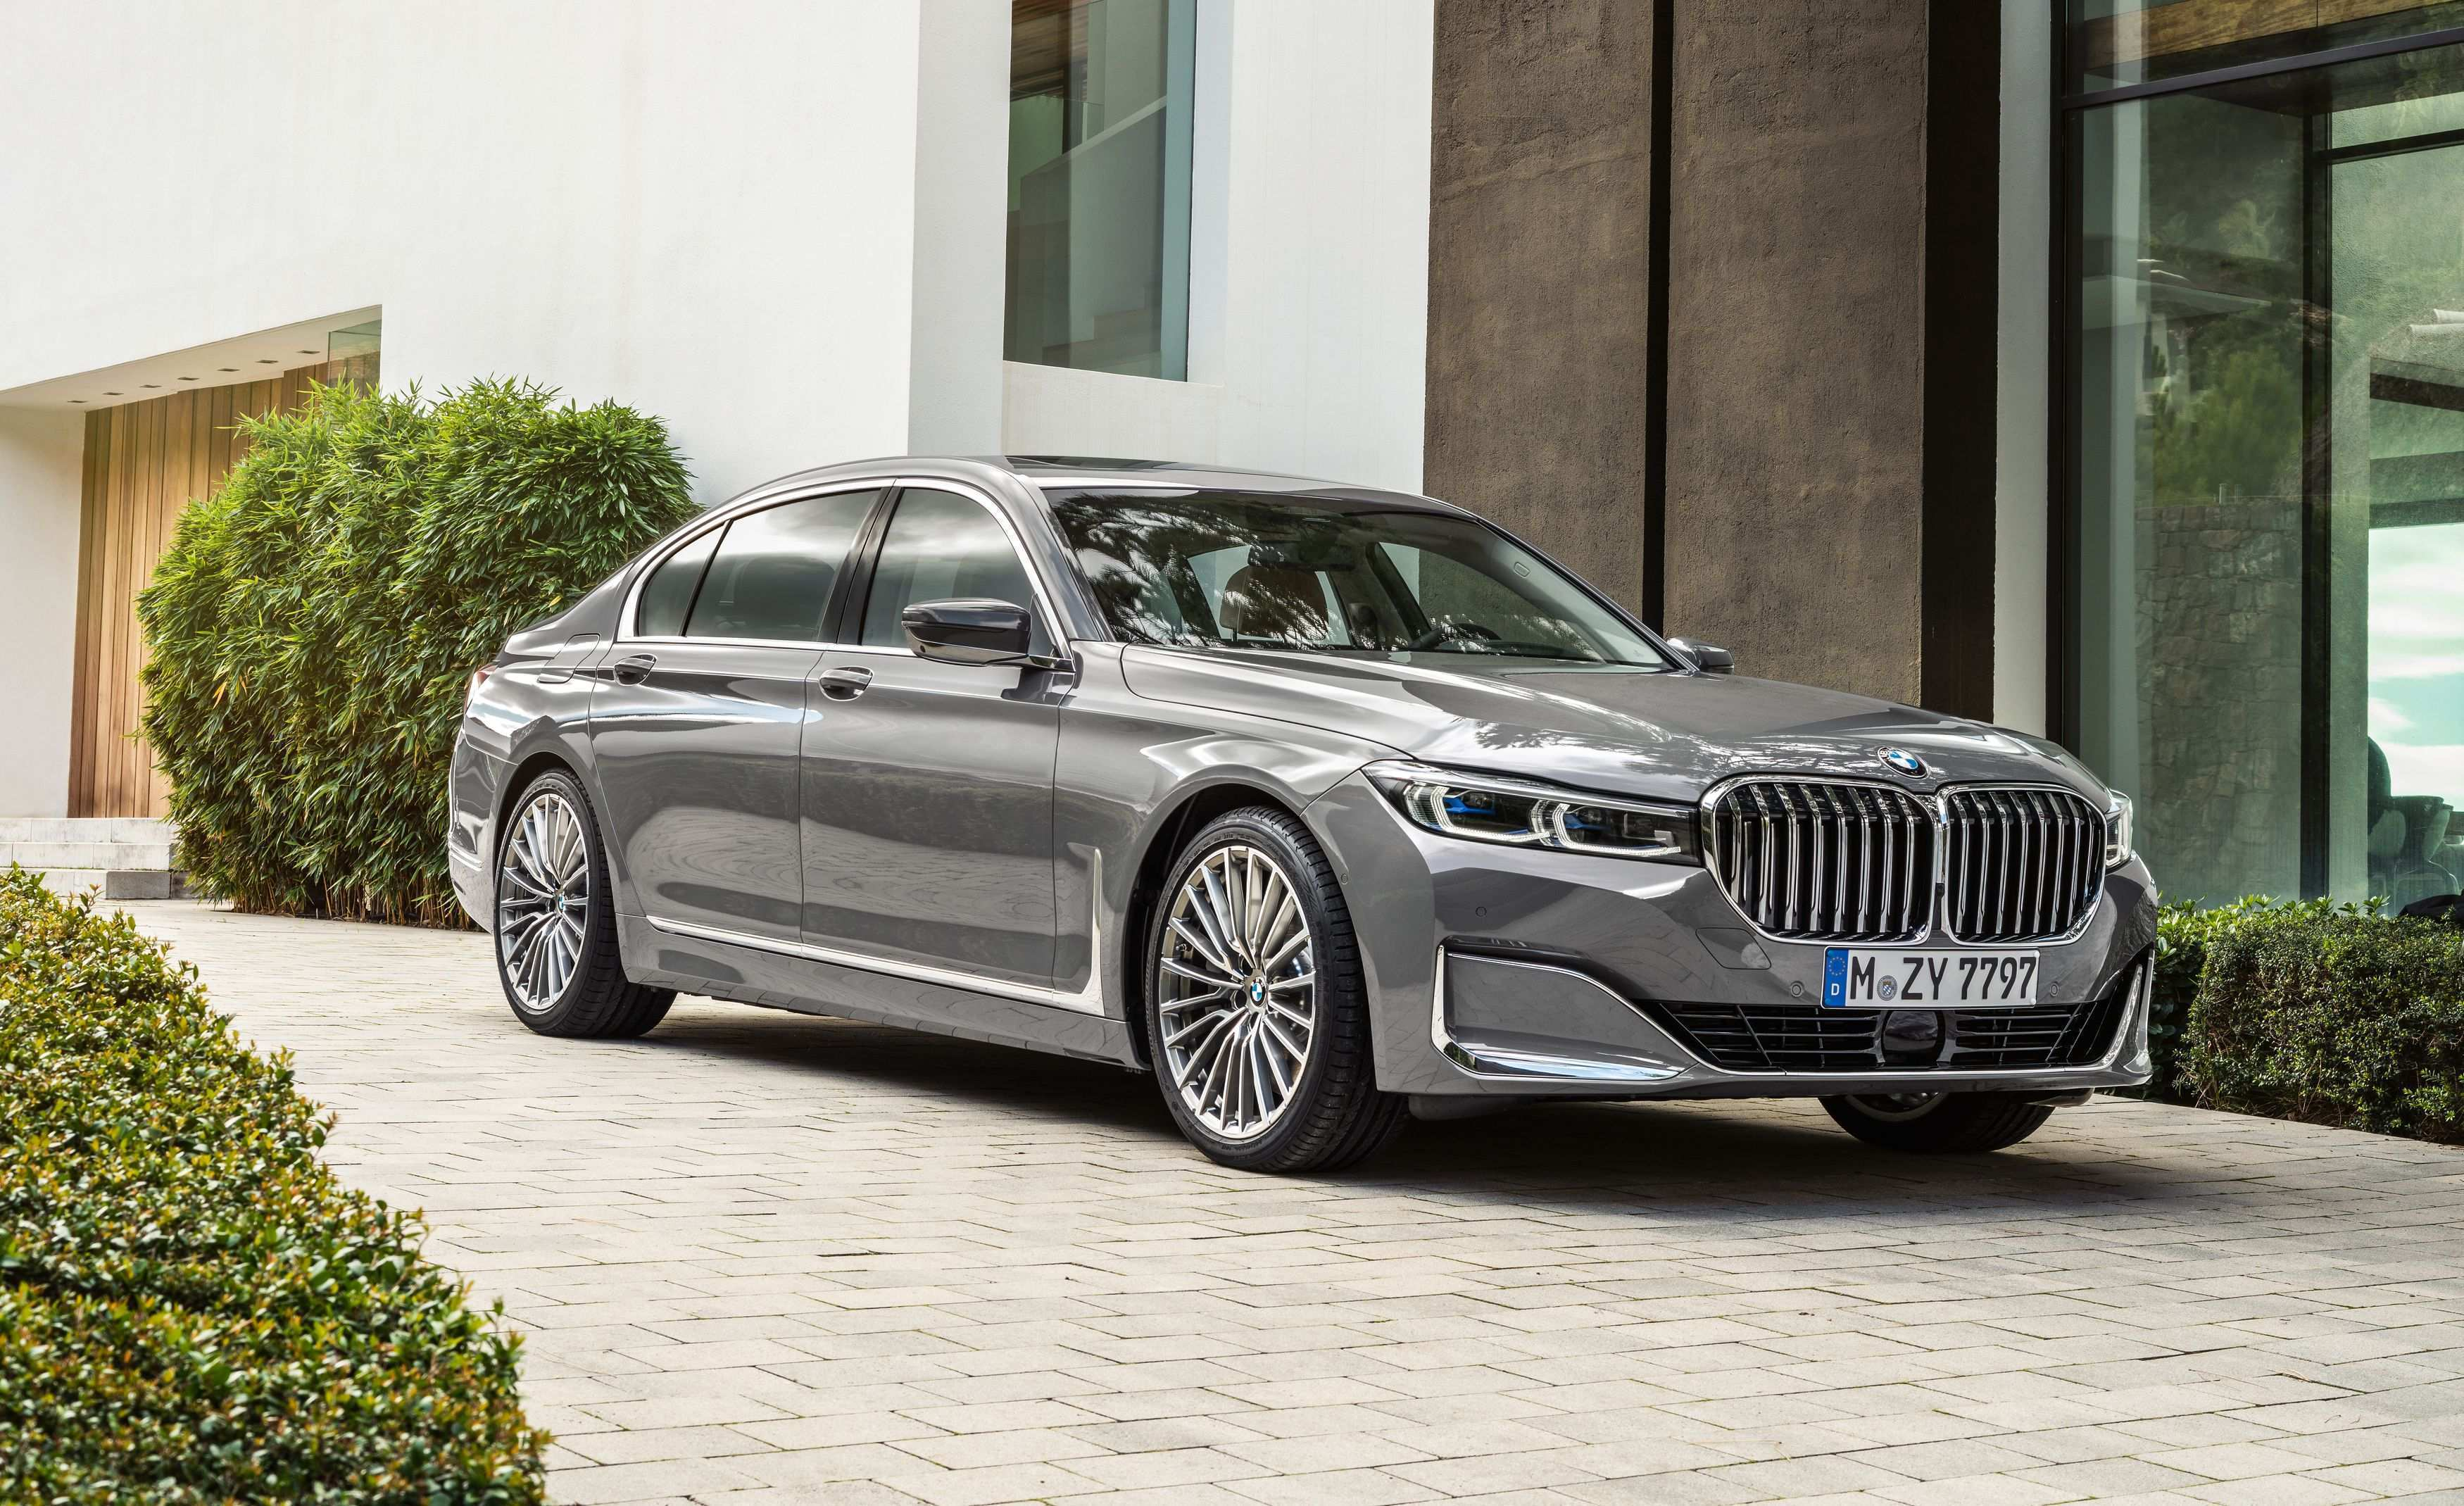 20 New 2020 BMW 7 Series Picture